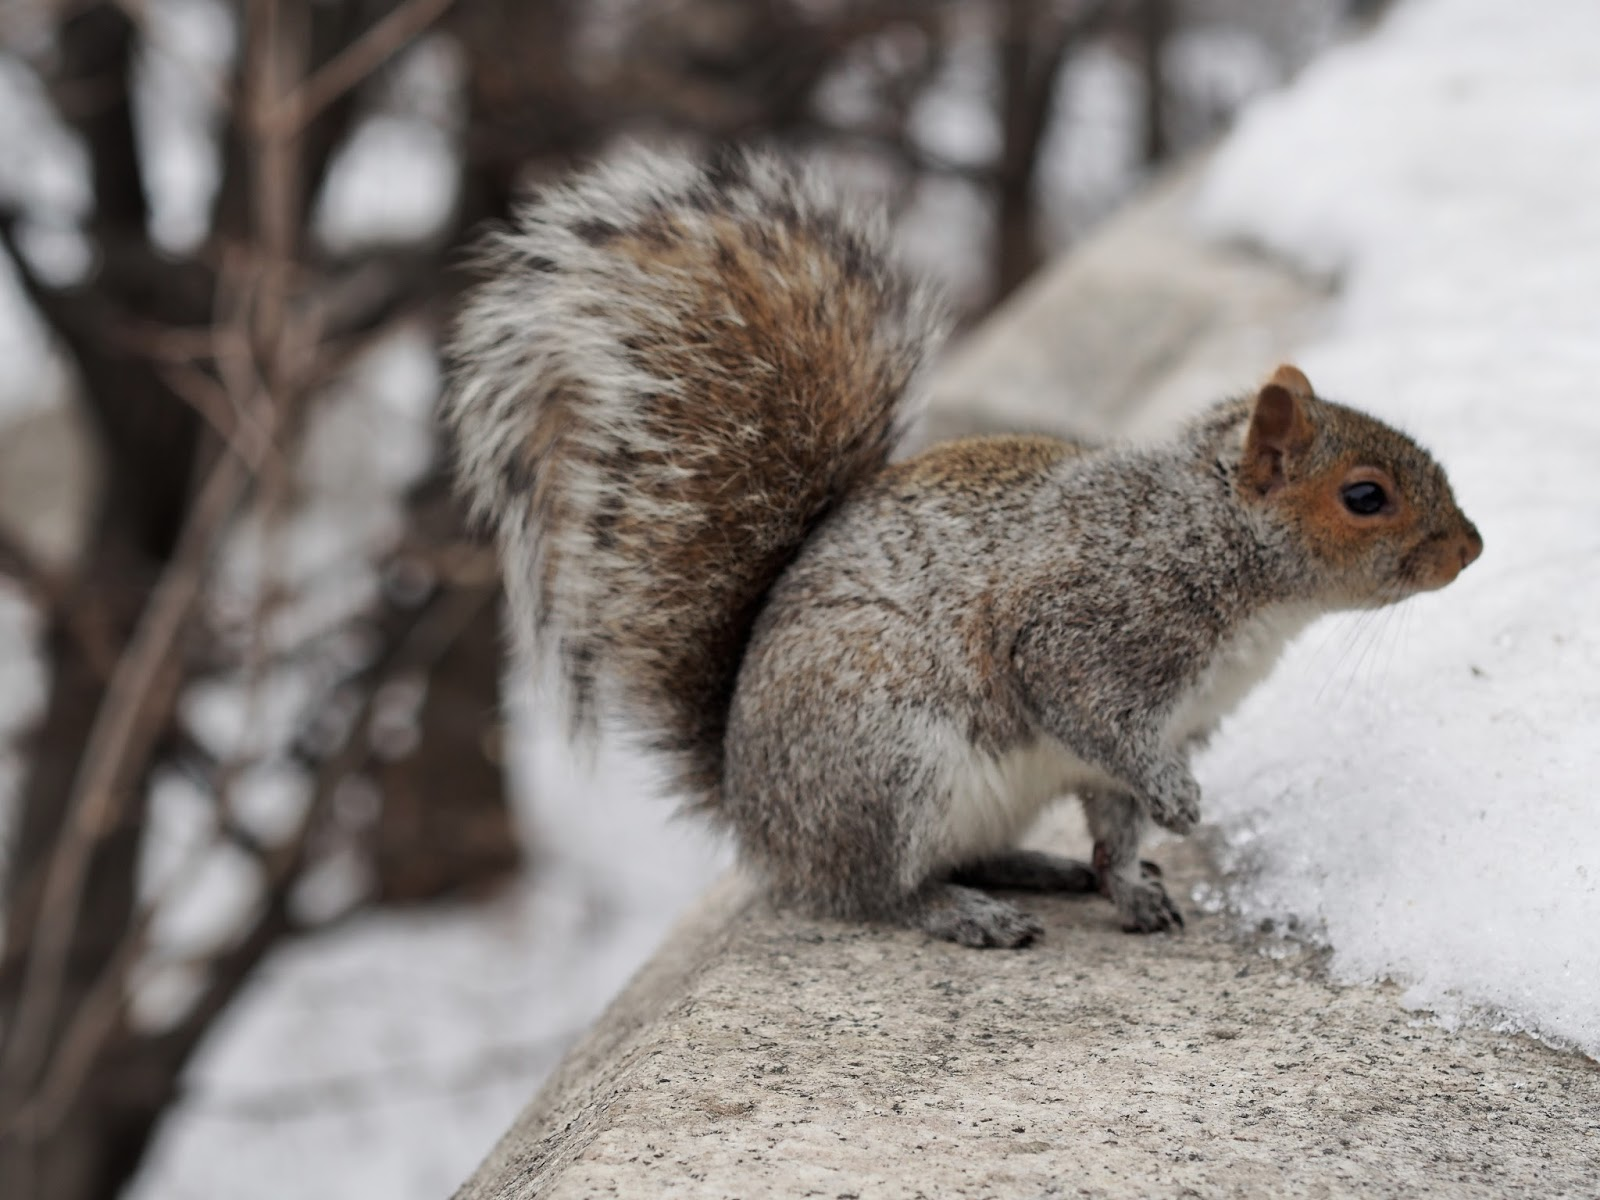 My Best Side #squirrel #Squirrels #wildlife #NYC #RiversidePark ©2015 Nancy Lundebjerg